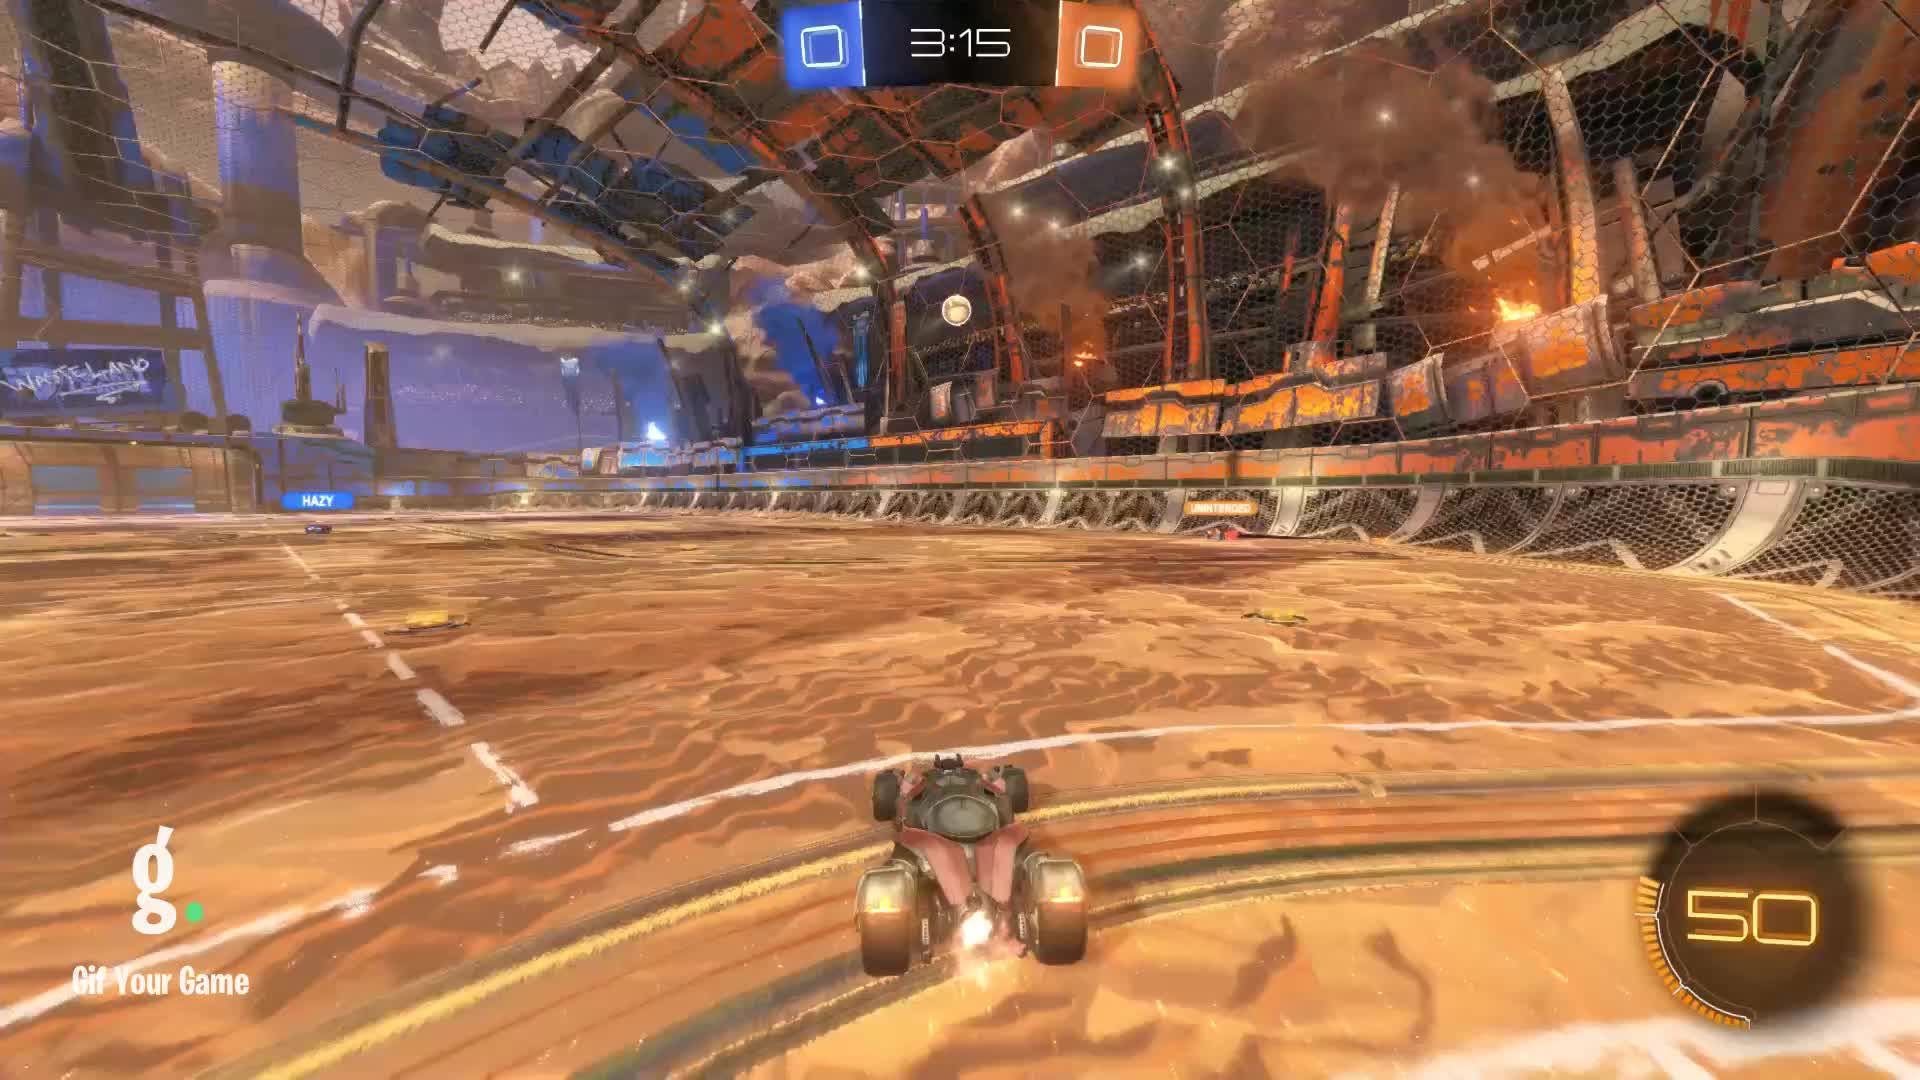 Gif Your Game, GifYourGame, Goal, Nethermorph, Rocket League, RocketLeague, 1v1 SkIlL dOeSn'T mAtTeR iN 3v3 GIFs